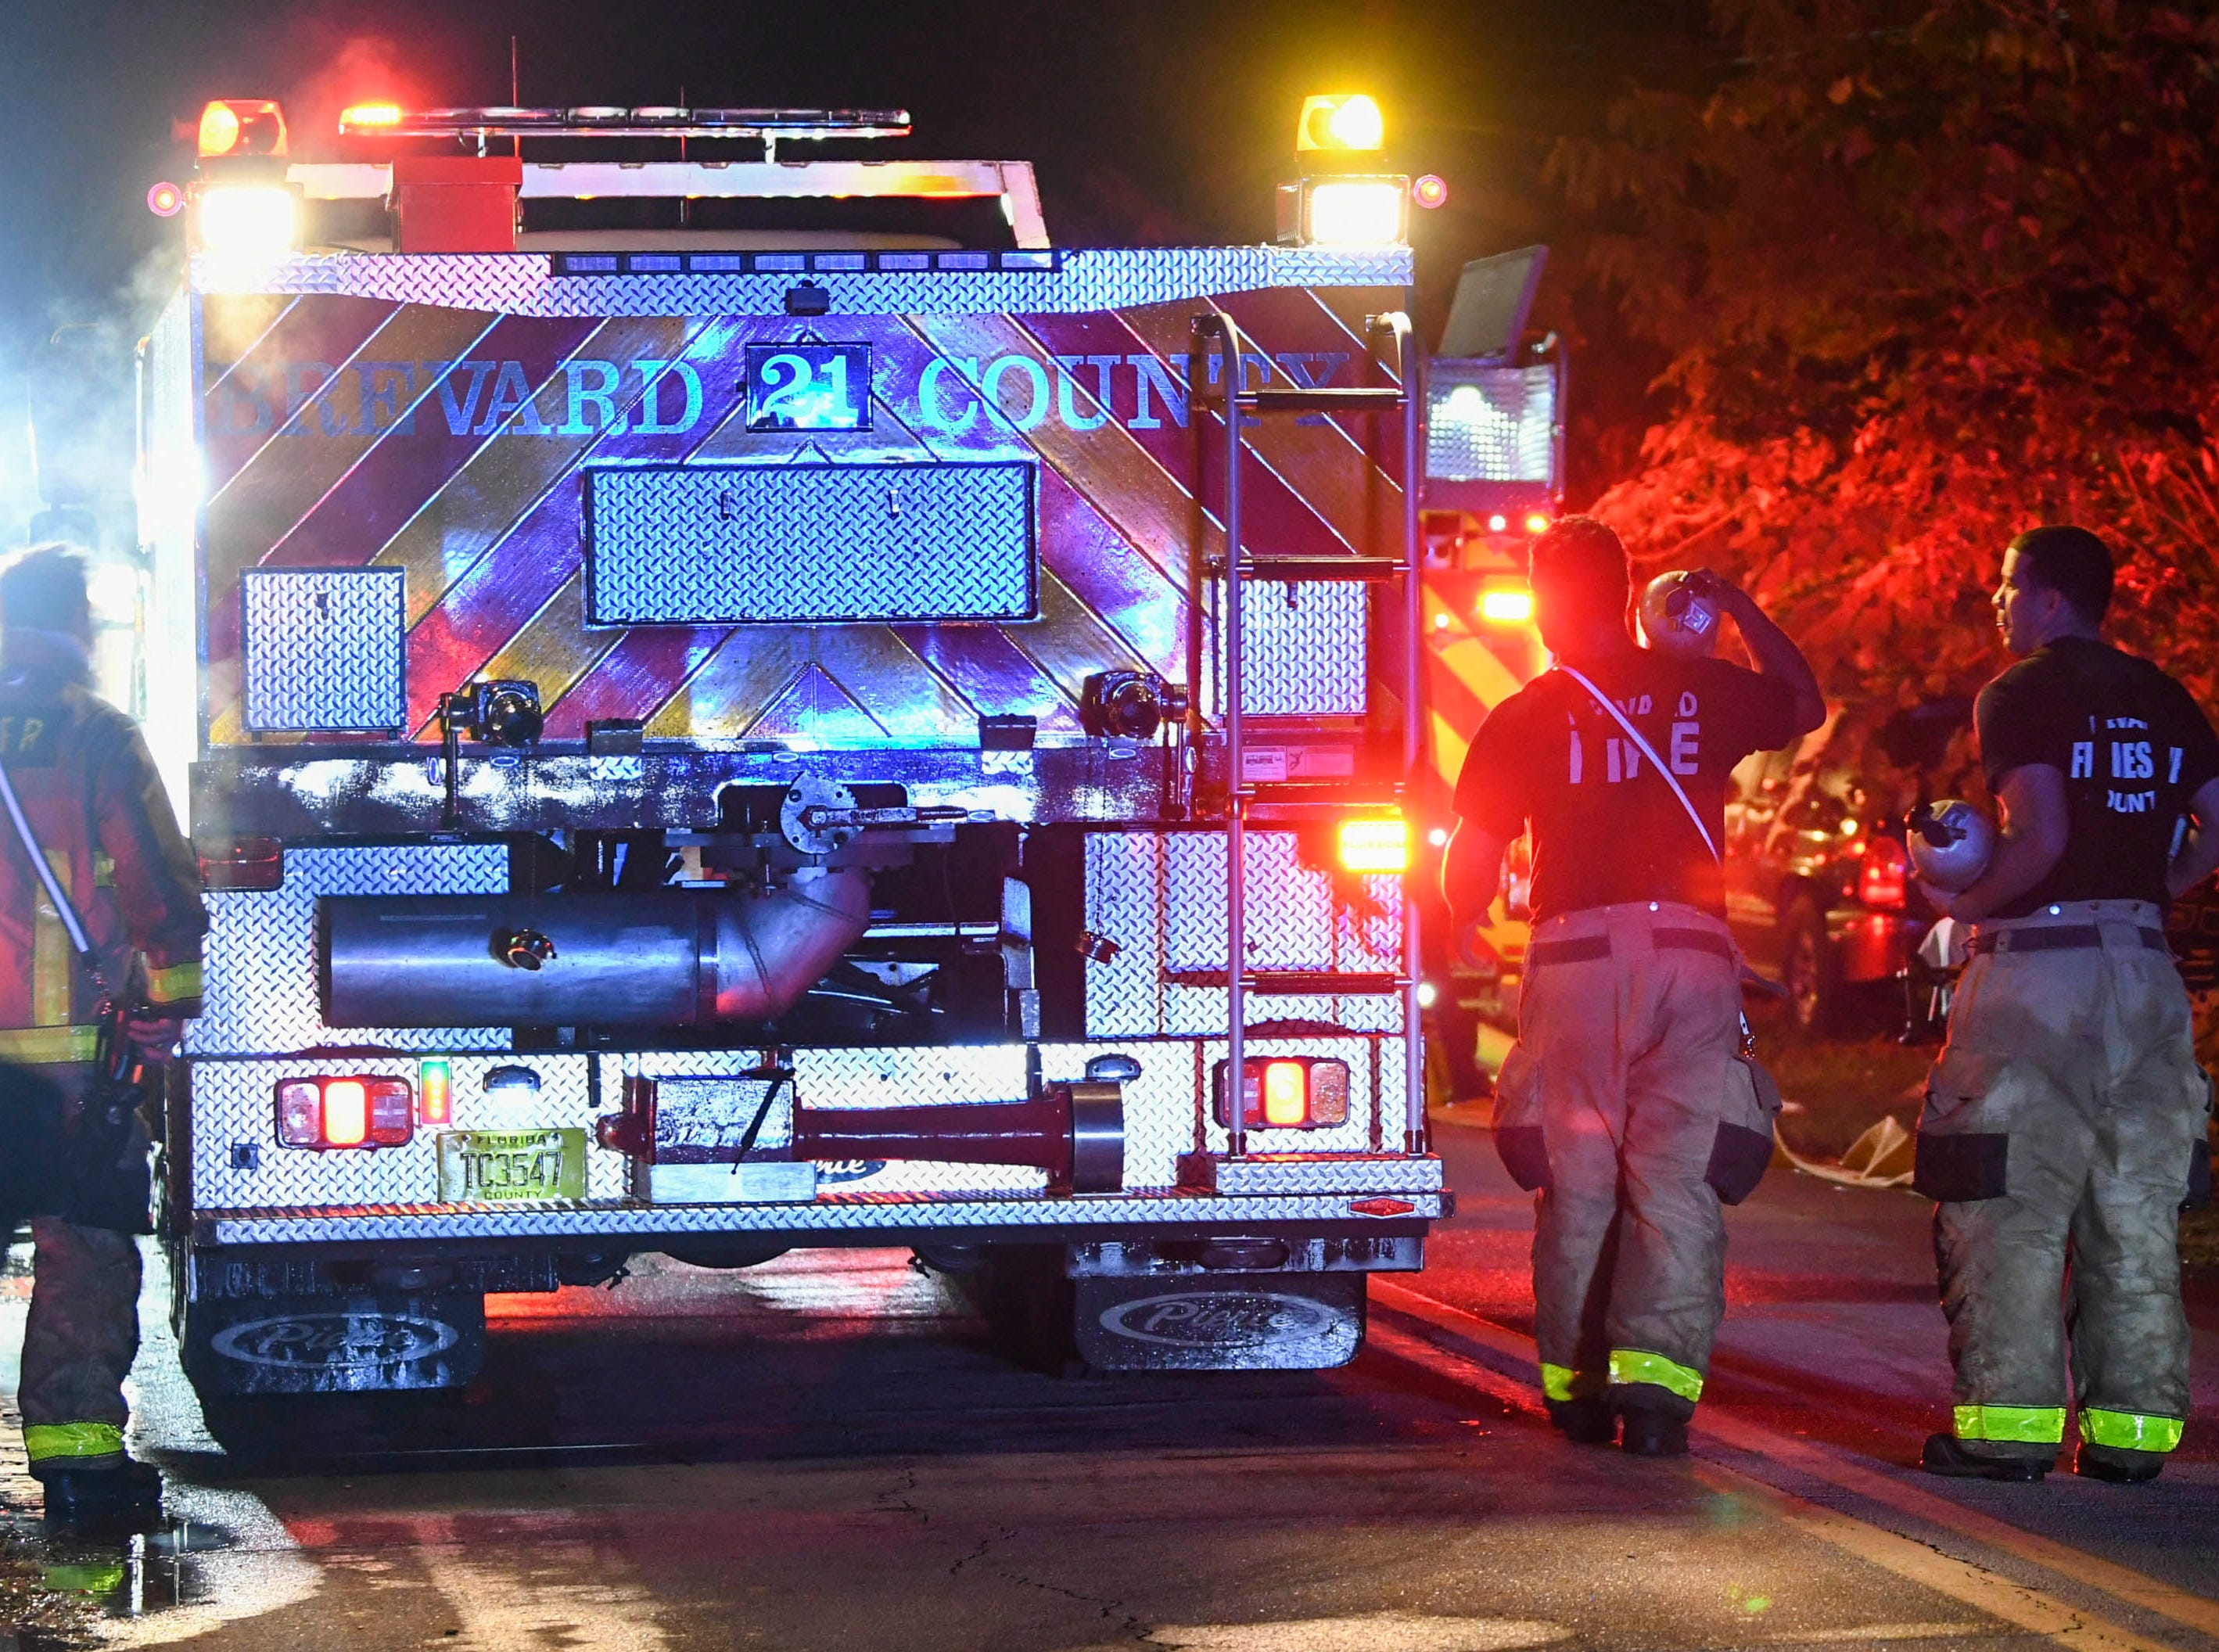 Brevard County firefighters mop up after a house fire on Brockett Rd. In Mims early Friday morning. The house was heavily damaged in the blaze.